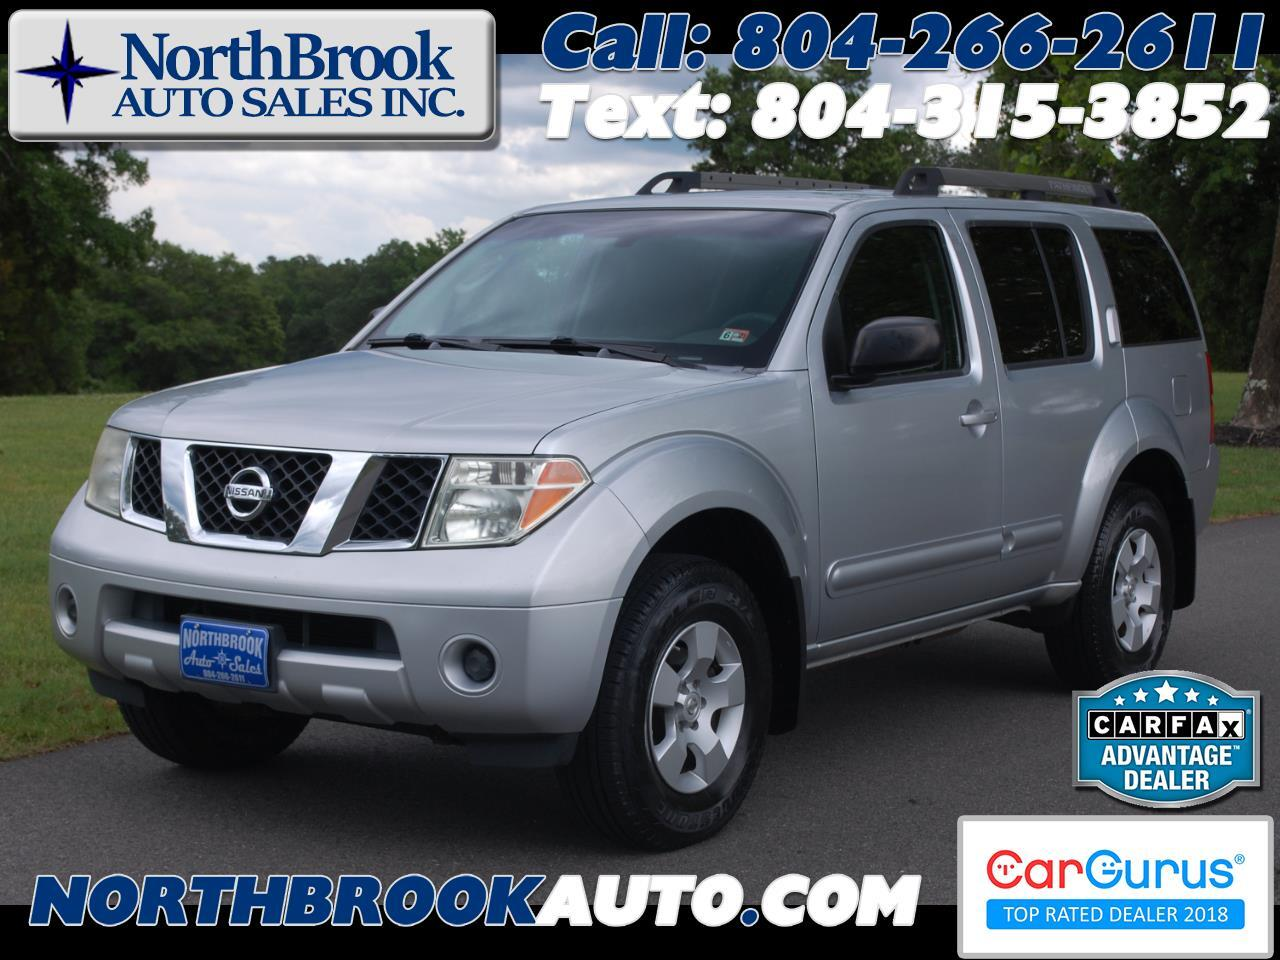 Nissan Pathfinder XE 4WD 2005